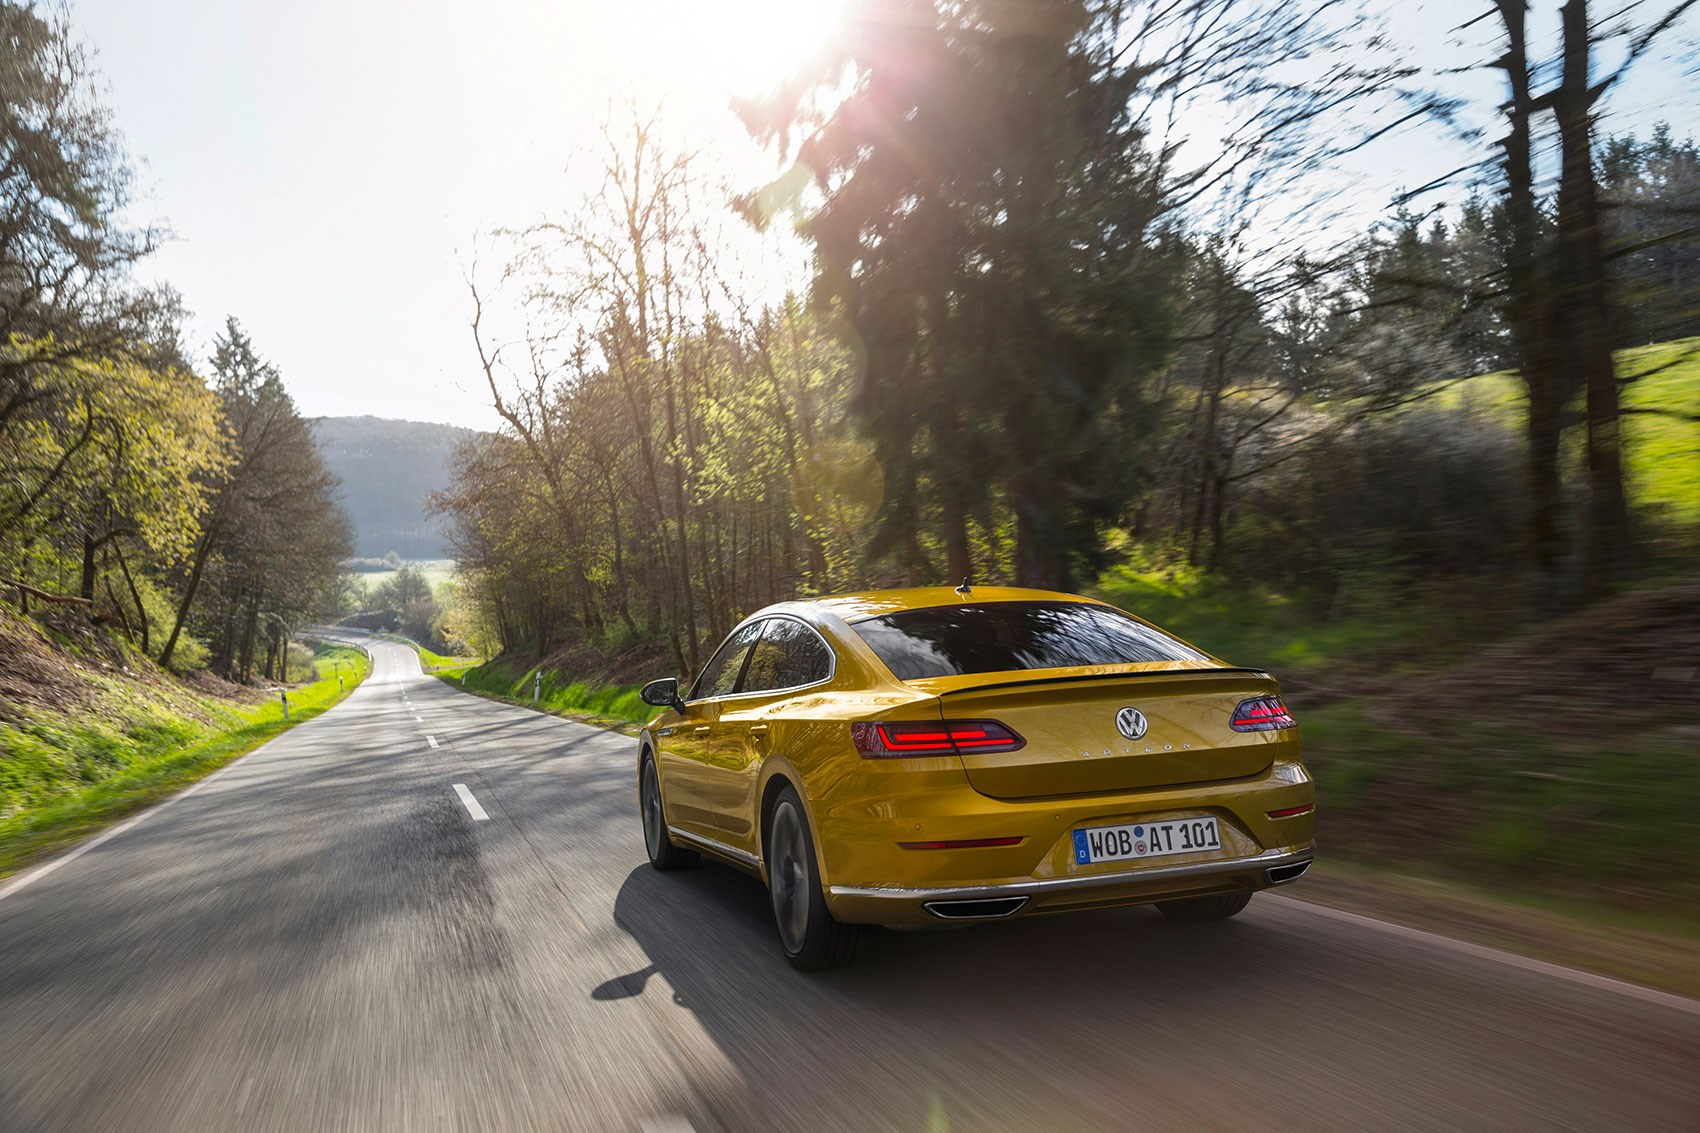 VW Arteon review: CAR magazine tests the new 2017 range-topper